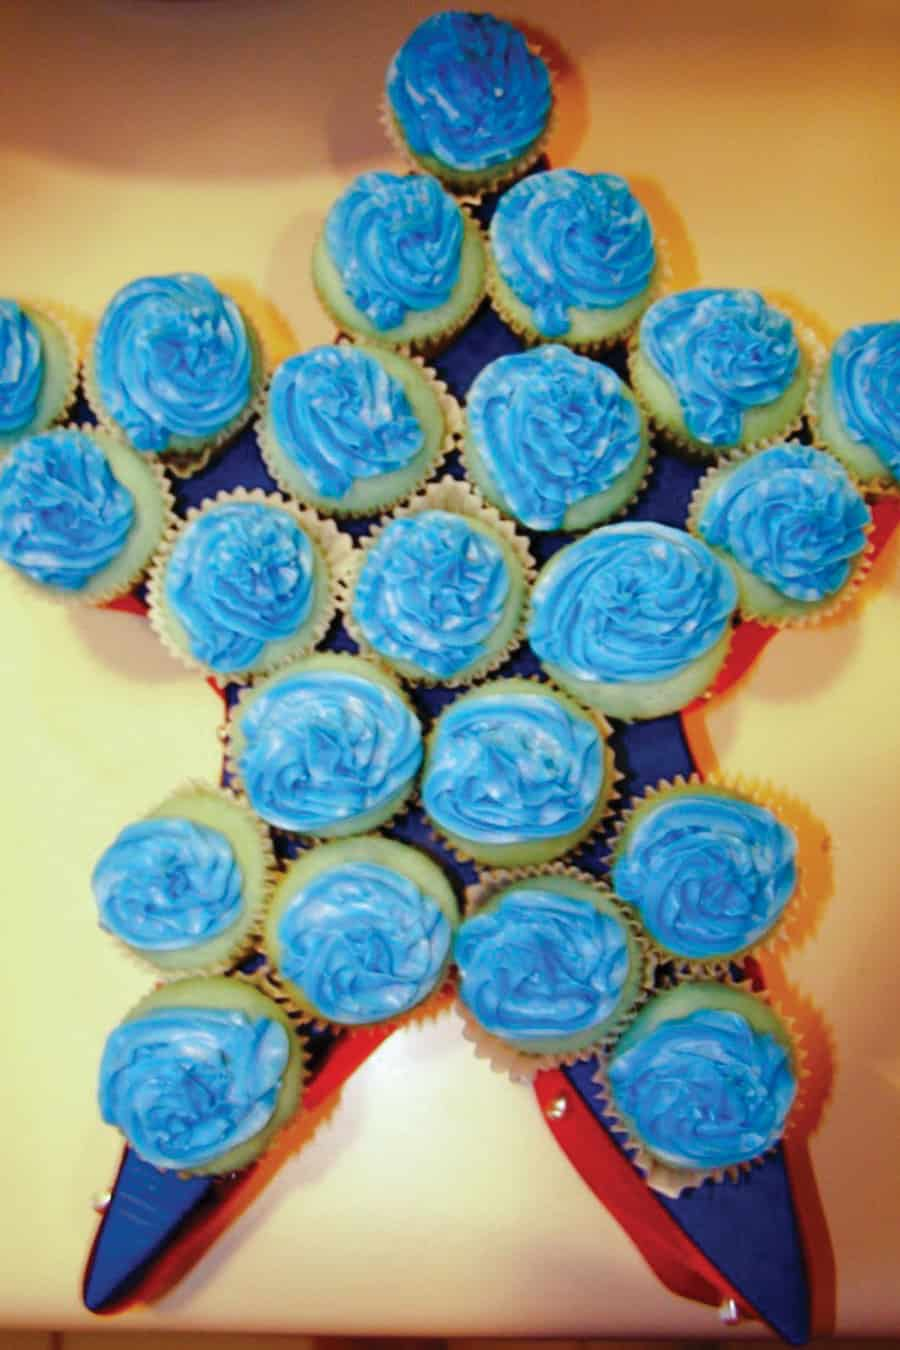 cupcakes arranged in a star shape with blue frosting